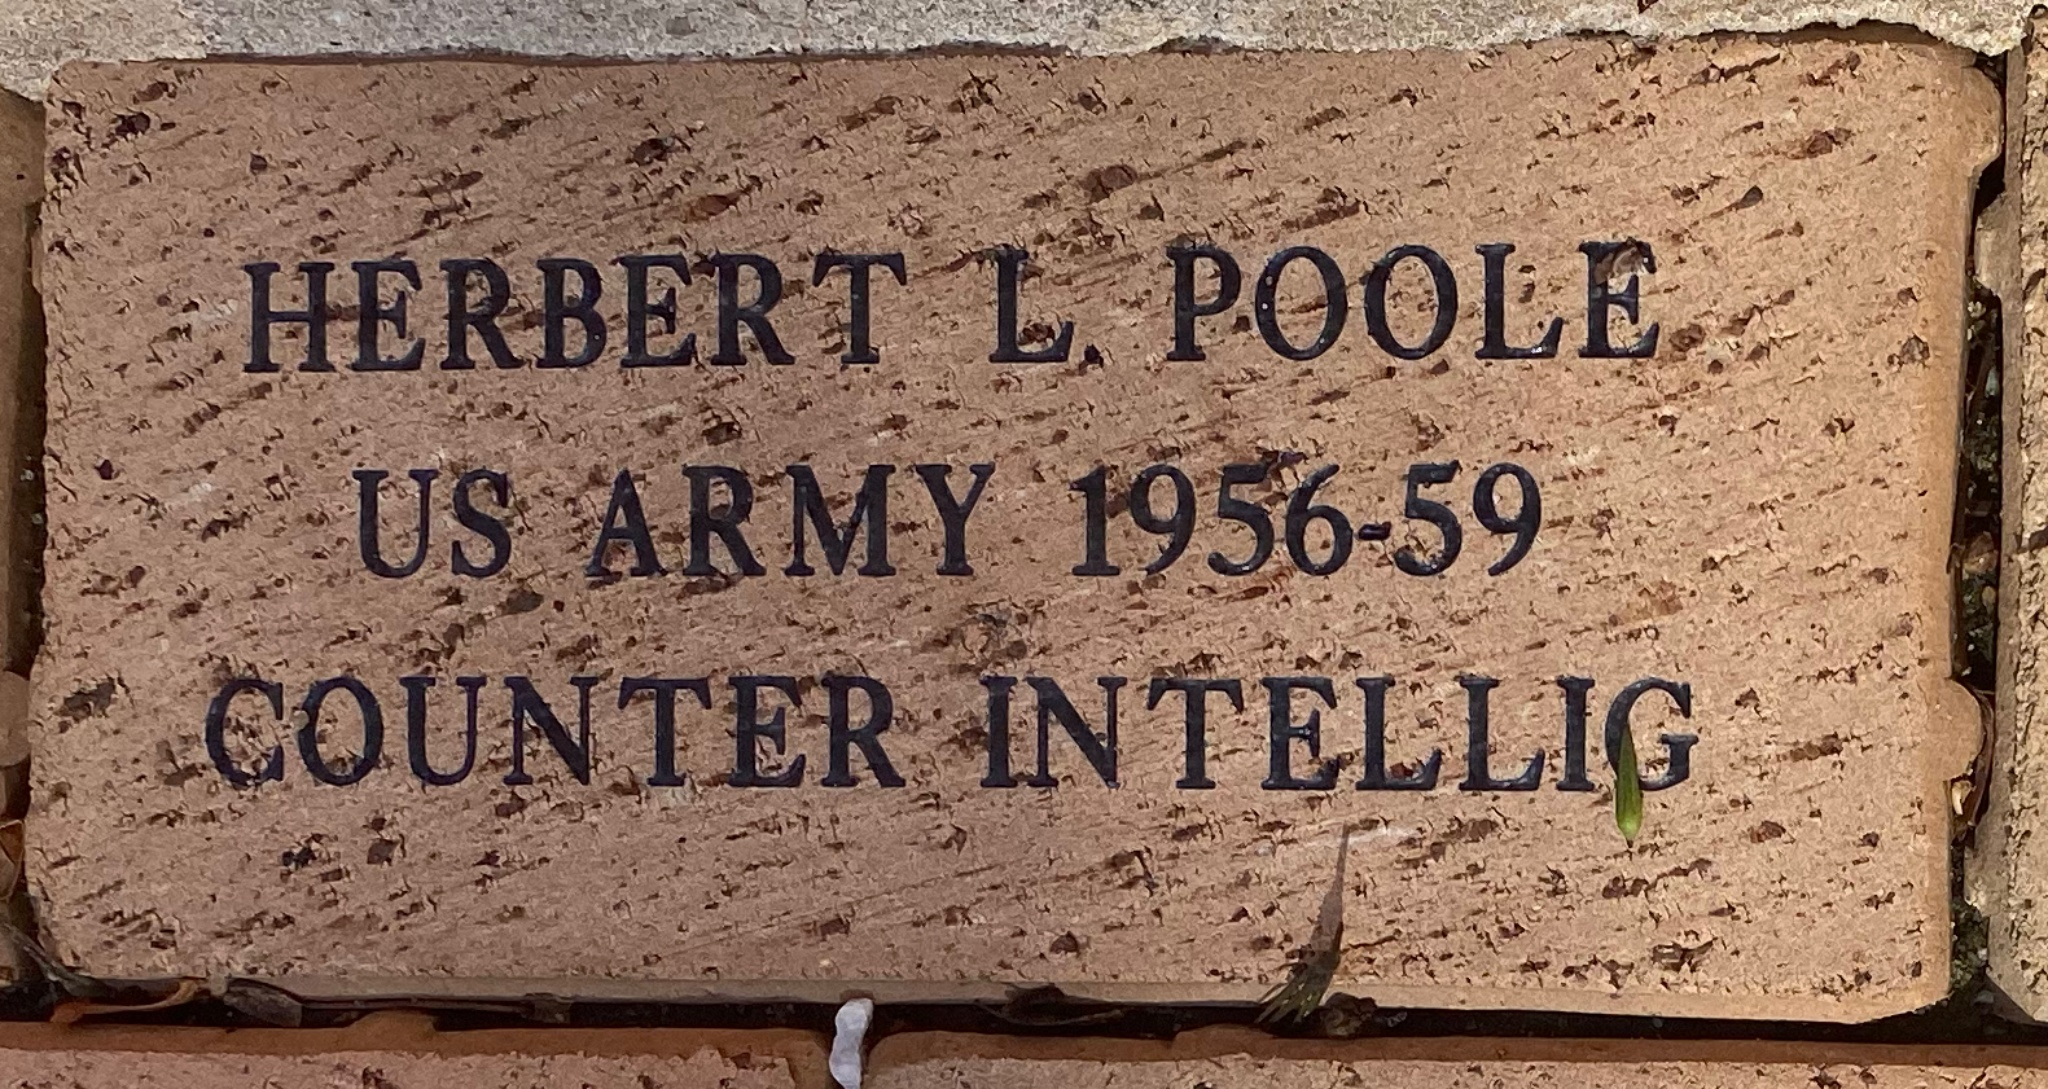 HERBERT L POOLE US ARMY 1956-59 COUNTER INTELLIG